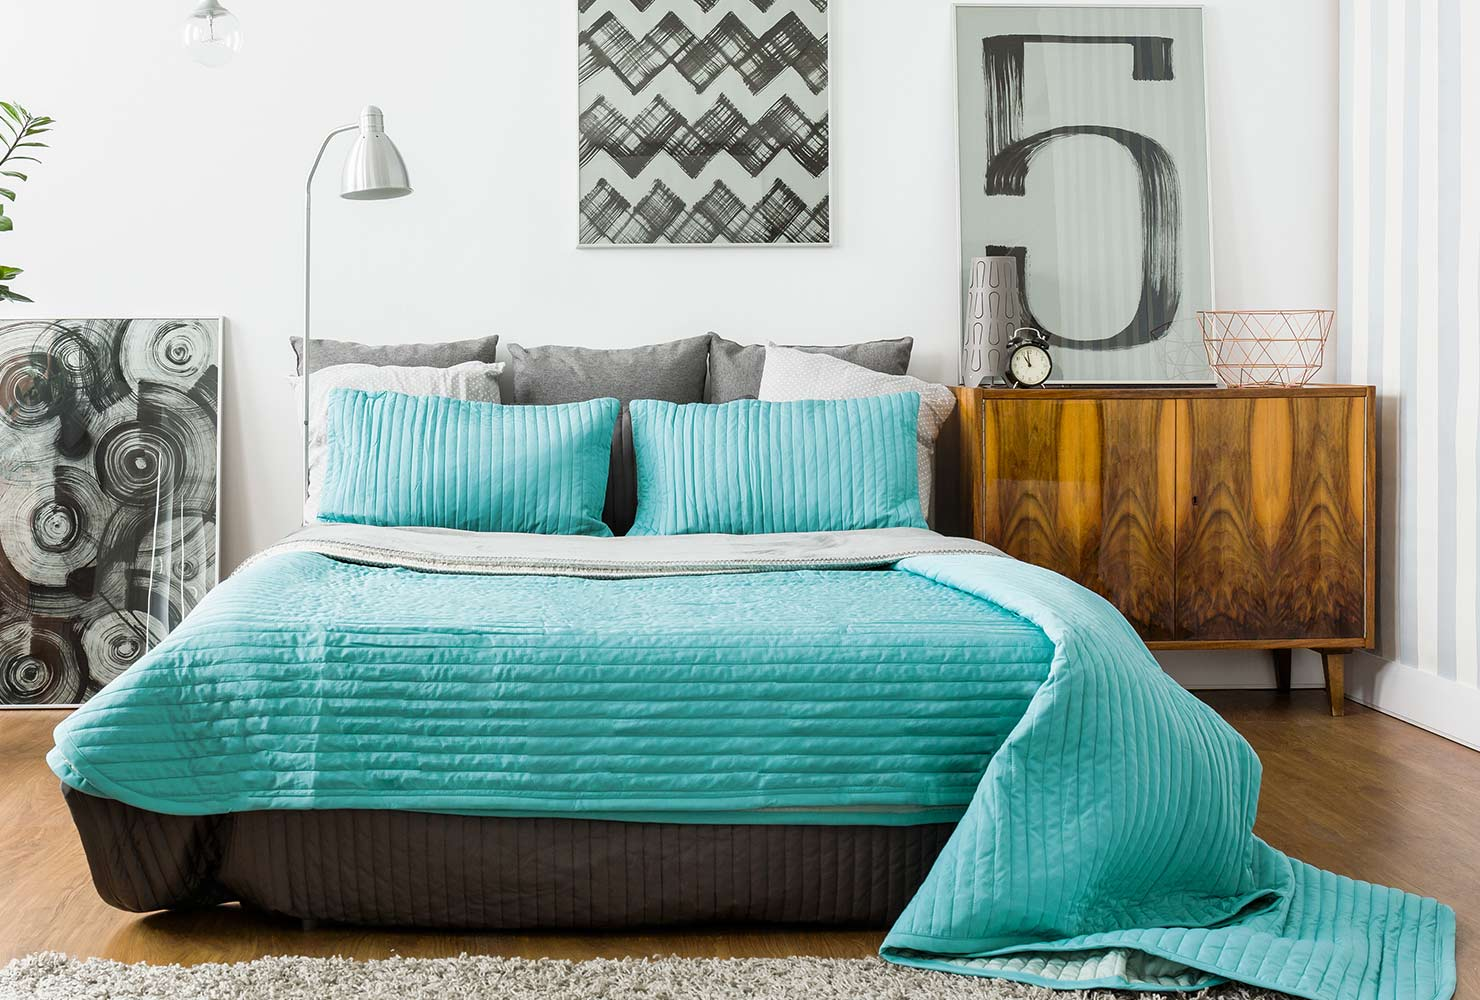 Turquoise bed with wall decor above bed.